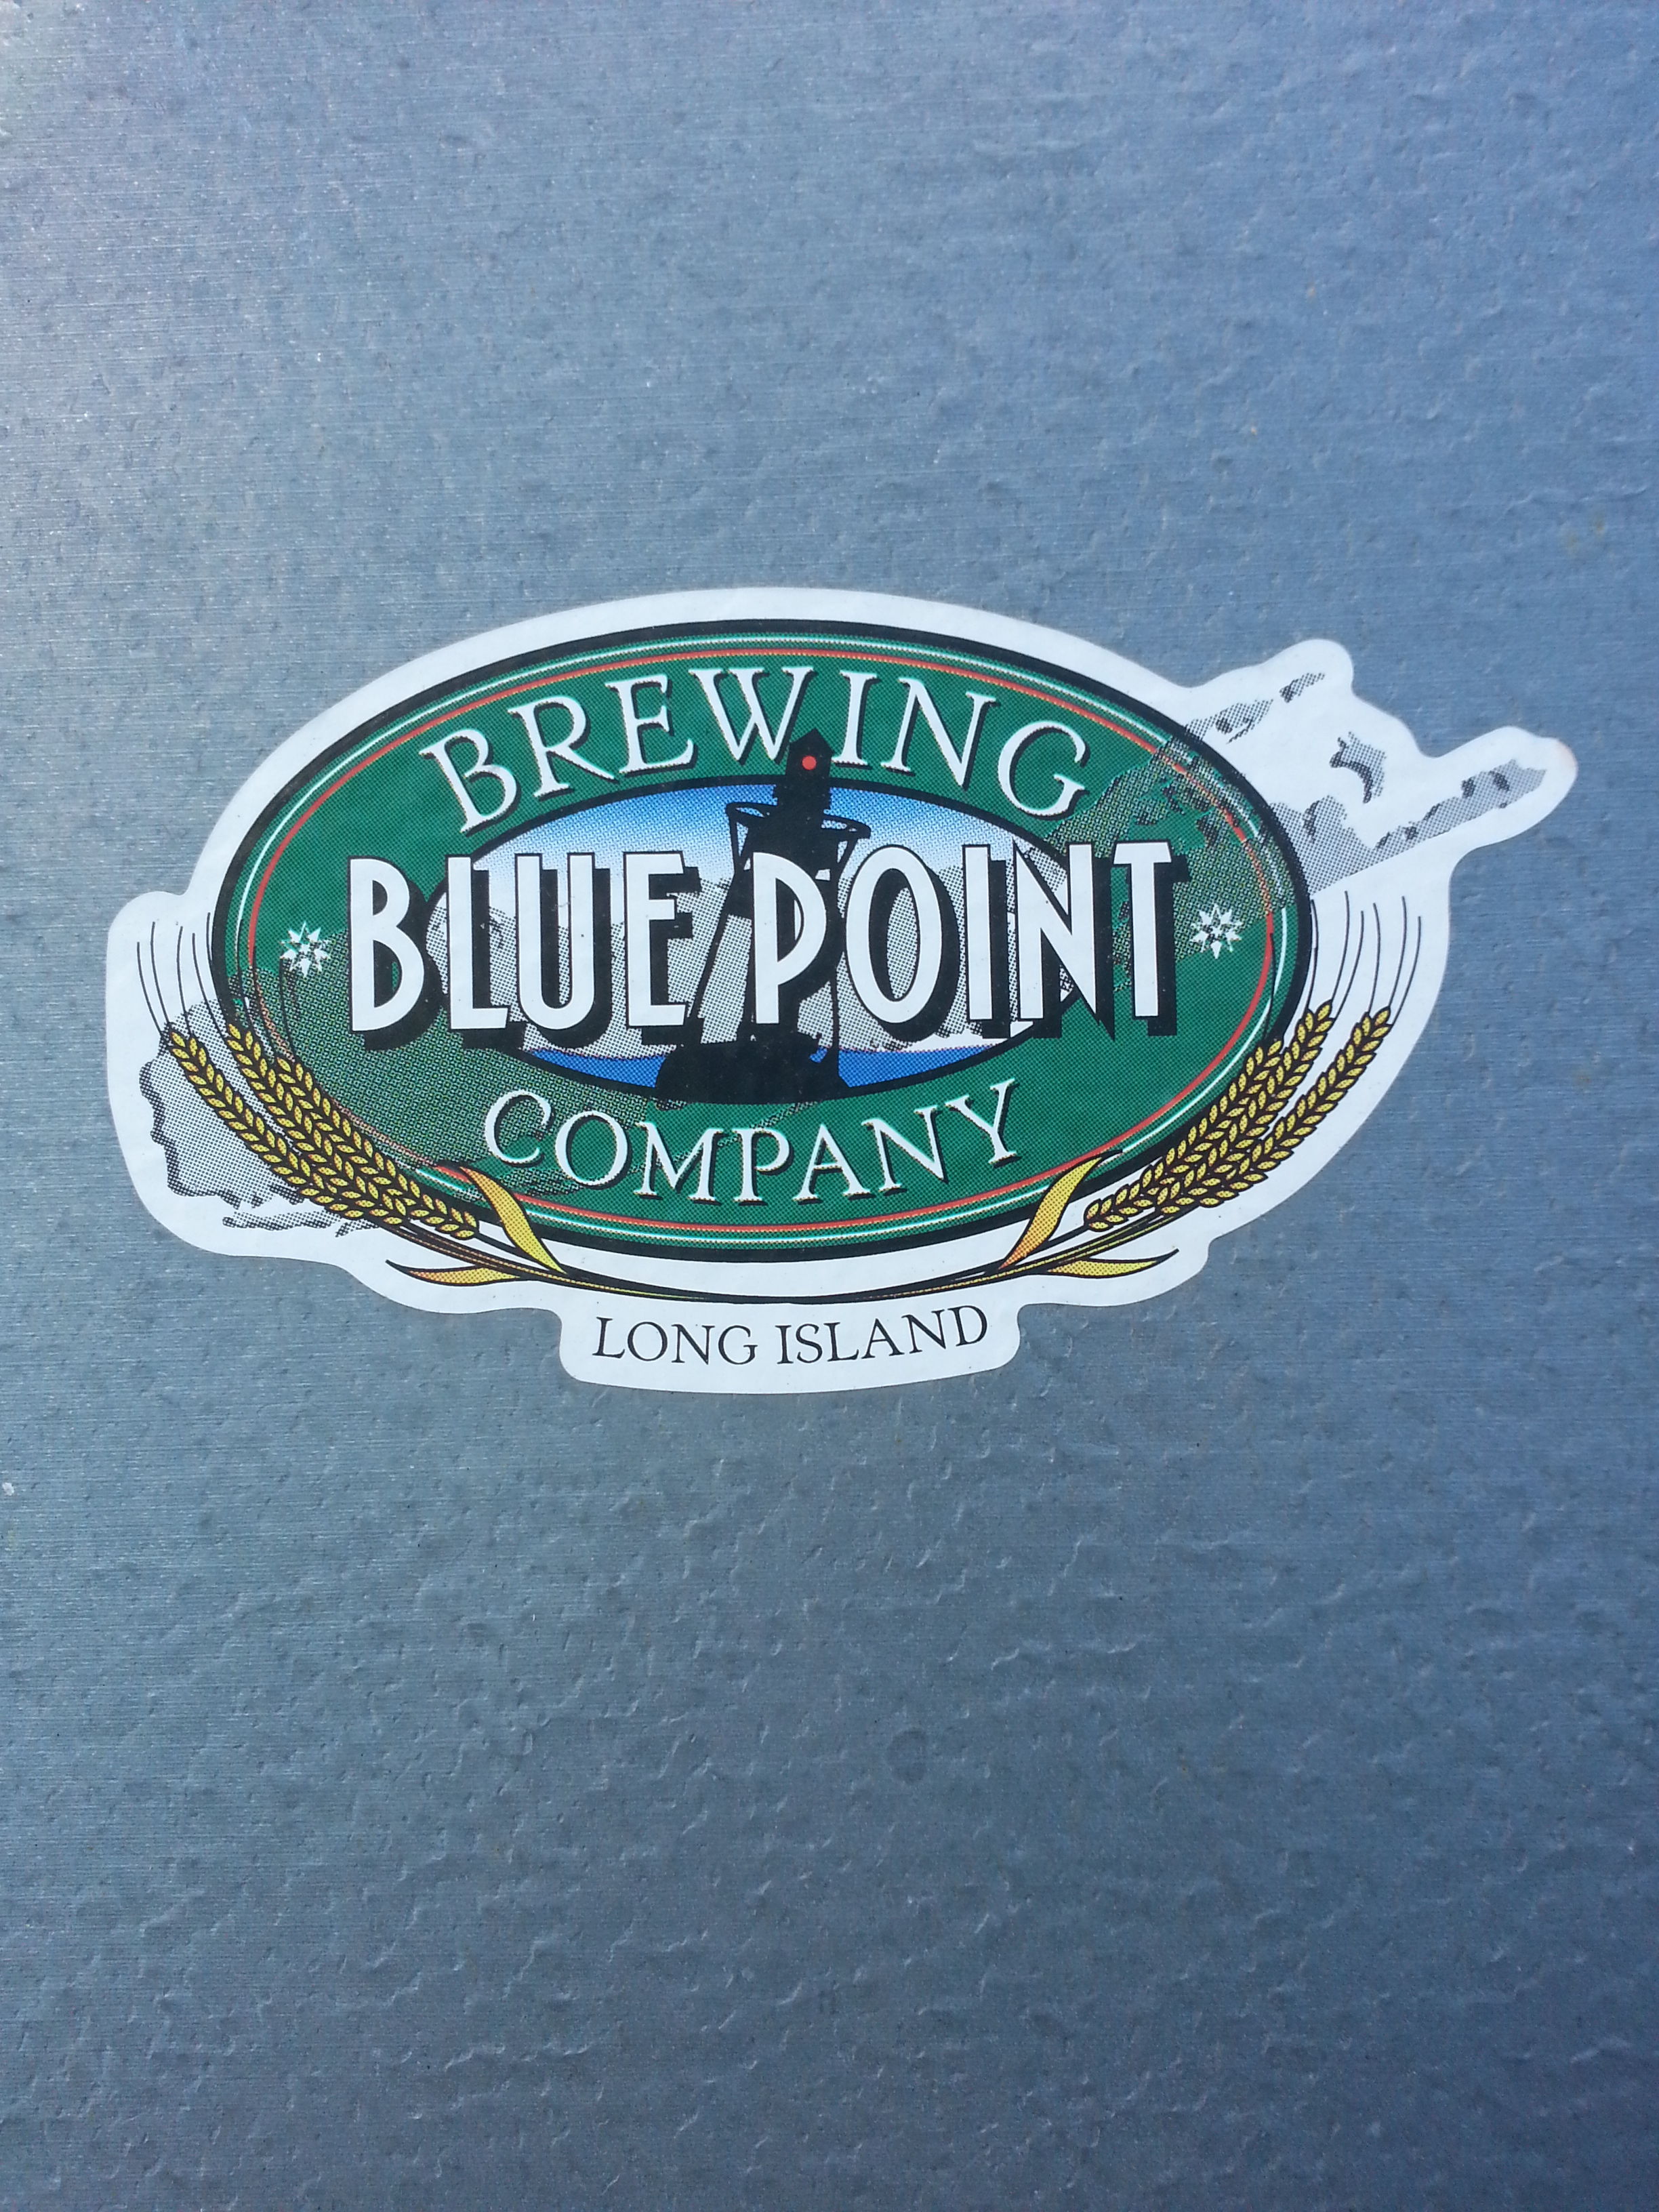 Cheers To Governor Brewer >> Patchogue: The Final Day Of My LI Beer Tour | LongIsland.com